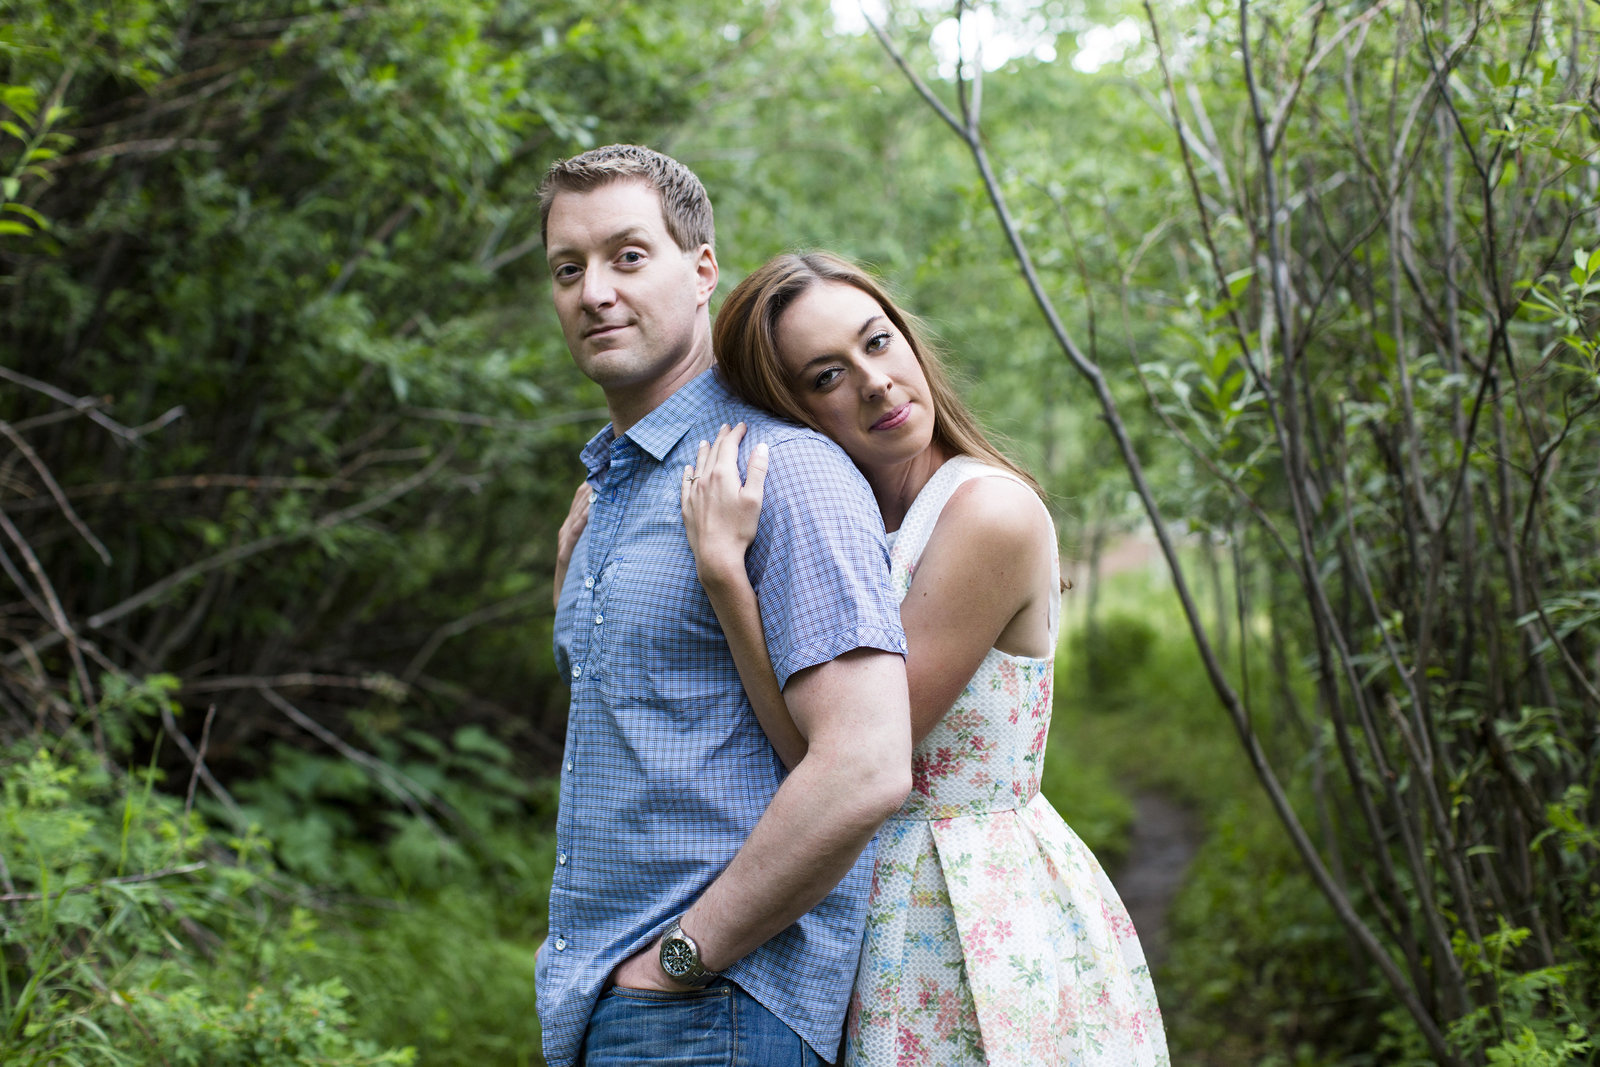 Jessi-And-Zach-Photography-Colorado-Wedding-Photographer-Nevada-Wedding-Photographer-Nevada-Engagement-Photographer_15